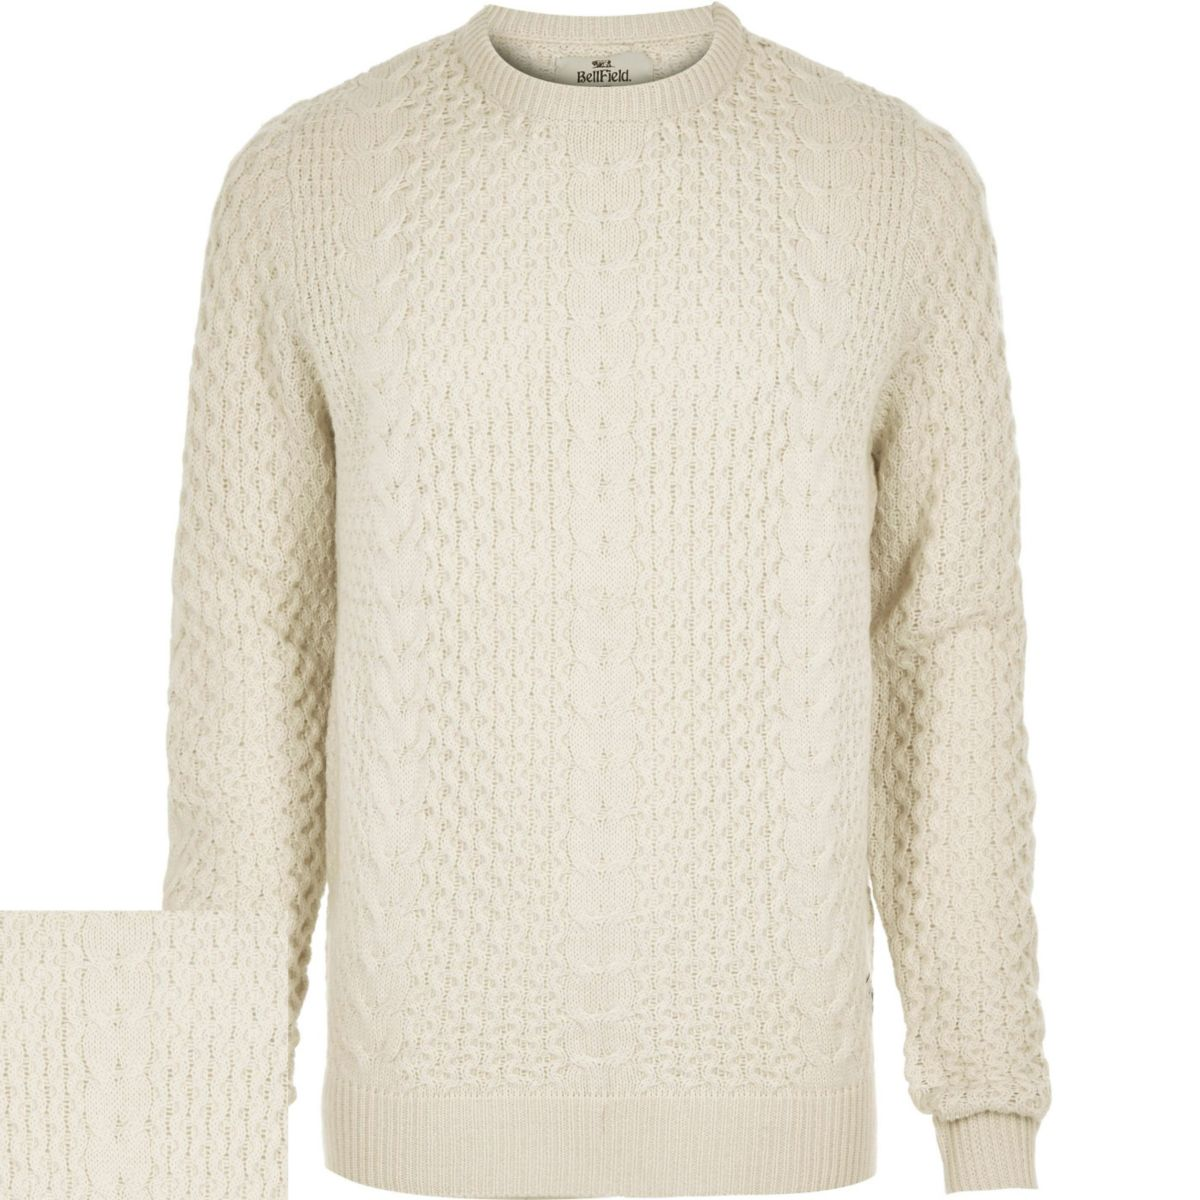 Cream Bellfield cable knit sweater